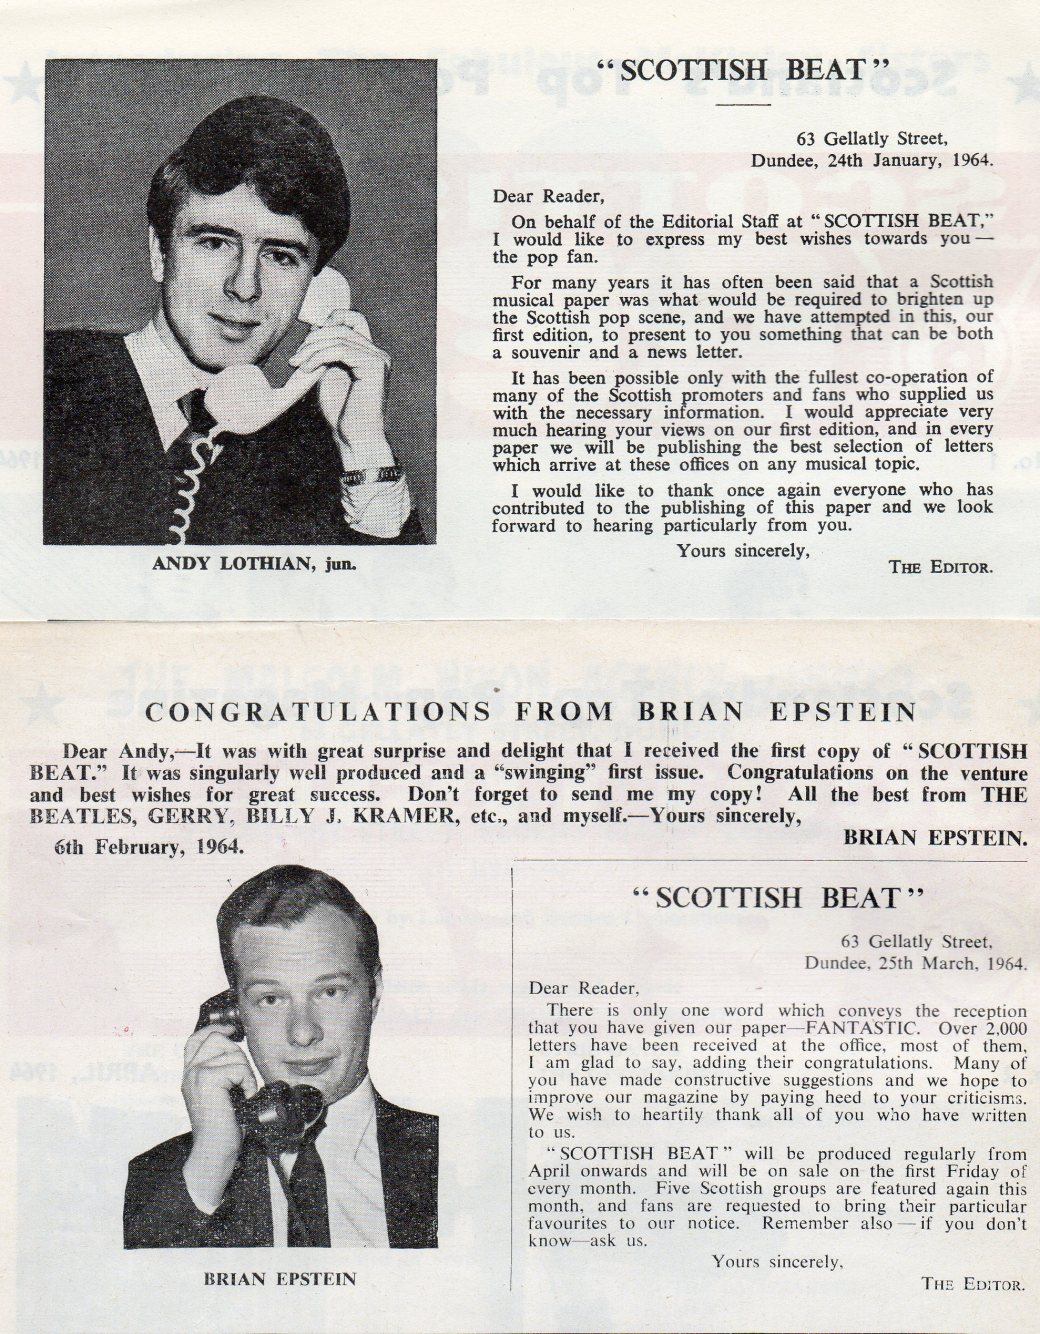 As was Albert Bonici, Andy Lothian jr was on friendly terms with Brian Epstein by 1964.